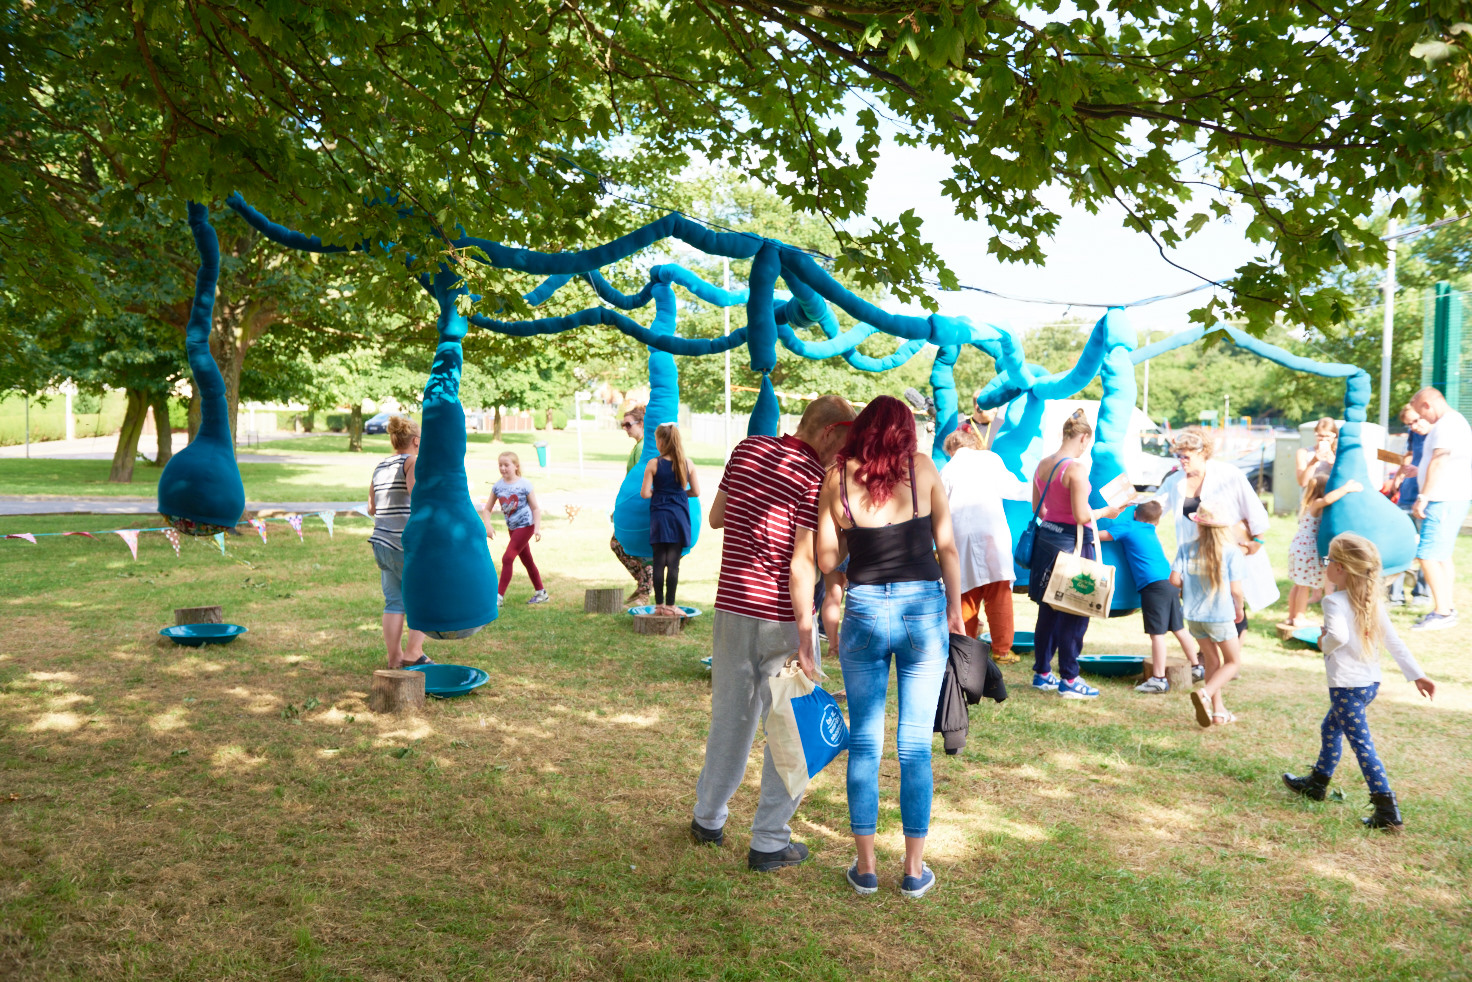 A photo showing an art installation on a green in front of a row of houses. The installation is large blue fabric tubes strung up about 2.5 metres in the air, with sections hanging down into large lumpy bulbs just off the ground. Approximately 20 people are walking around the space, looking at, touching and hugging the bulbs, and chatting to each other.